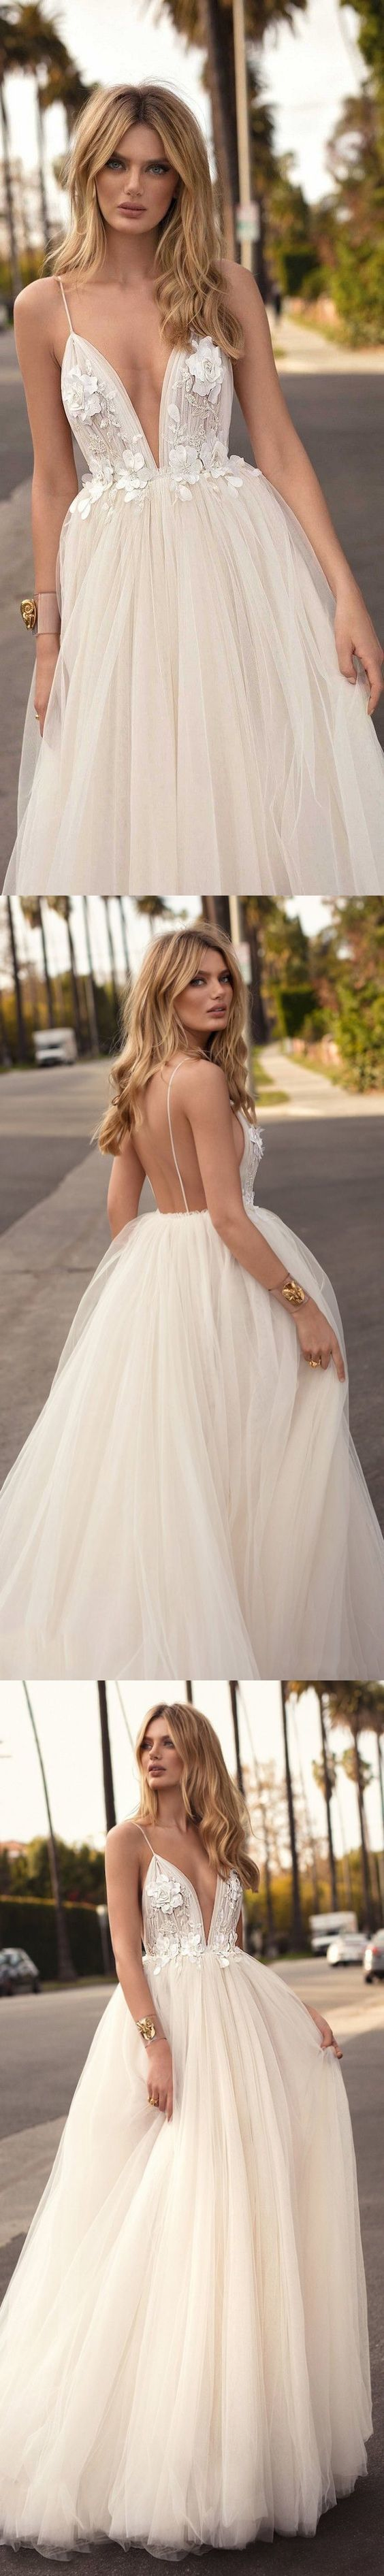 Backless Wedding Dresses A-line Spaghetti Straps Romantic Open Back Bridal Gown